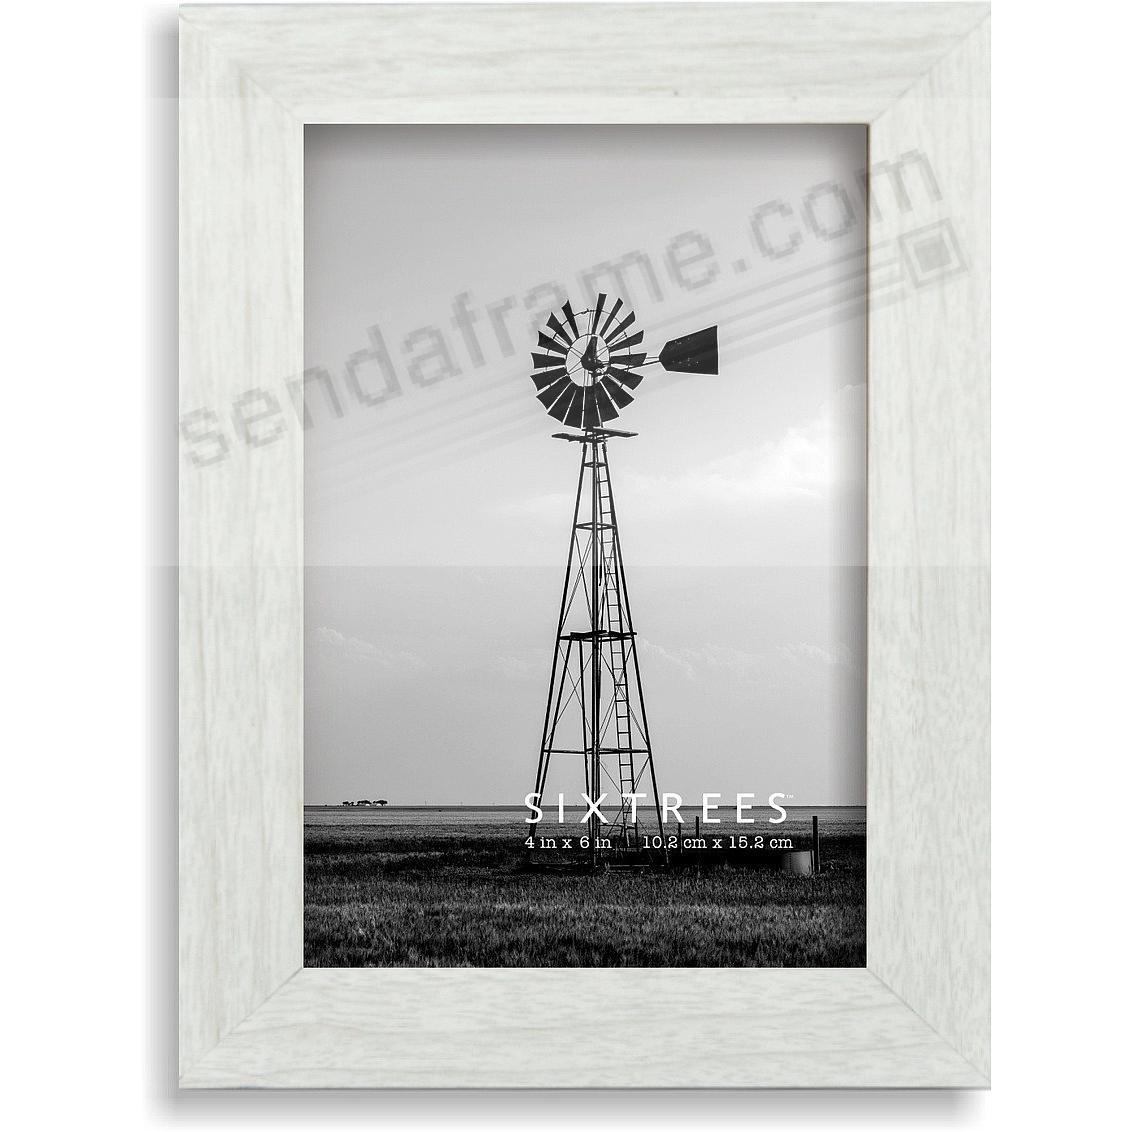 Weathered White/Grey LAWRENCE 4x6 Frame by Sixtrees®